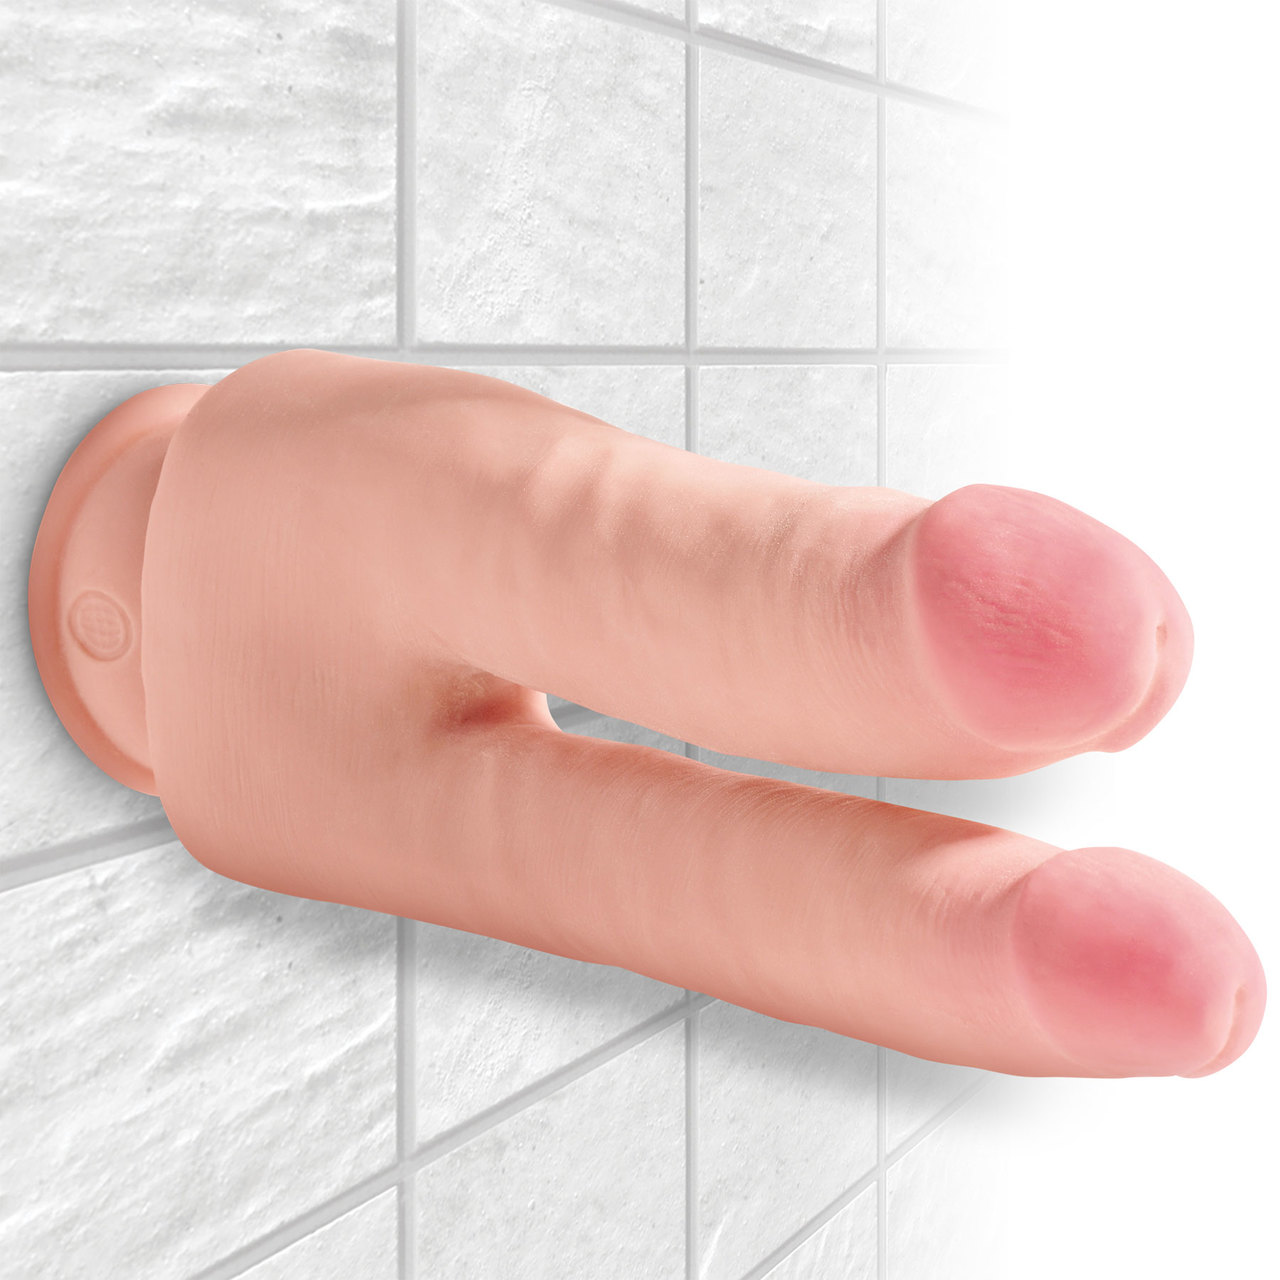 Pipedream King Cock Plus 3D 9 point 5 inch Triple Density Double Penetrator Dong Light Flesh PD5724 21 603912762570 Wall Detail